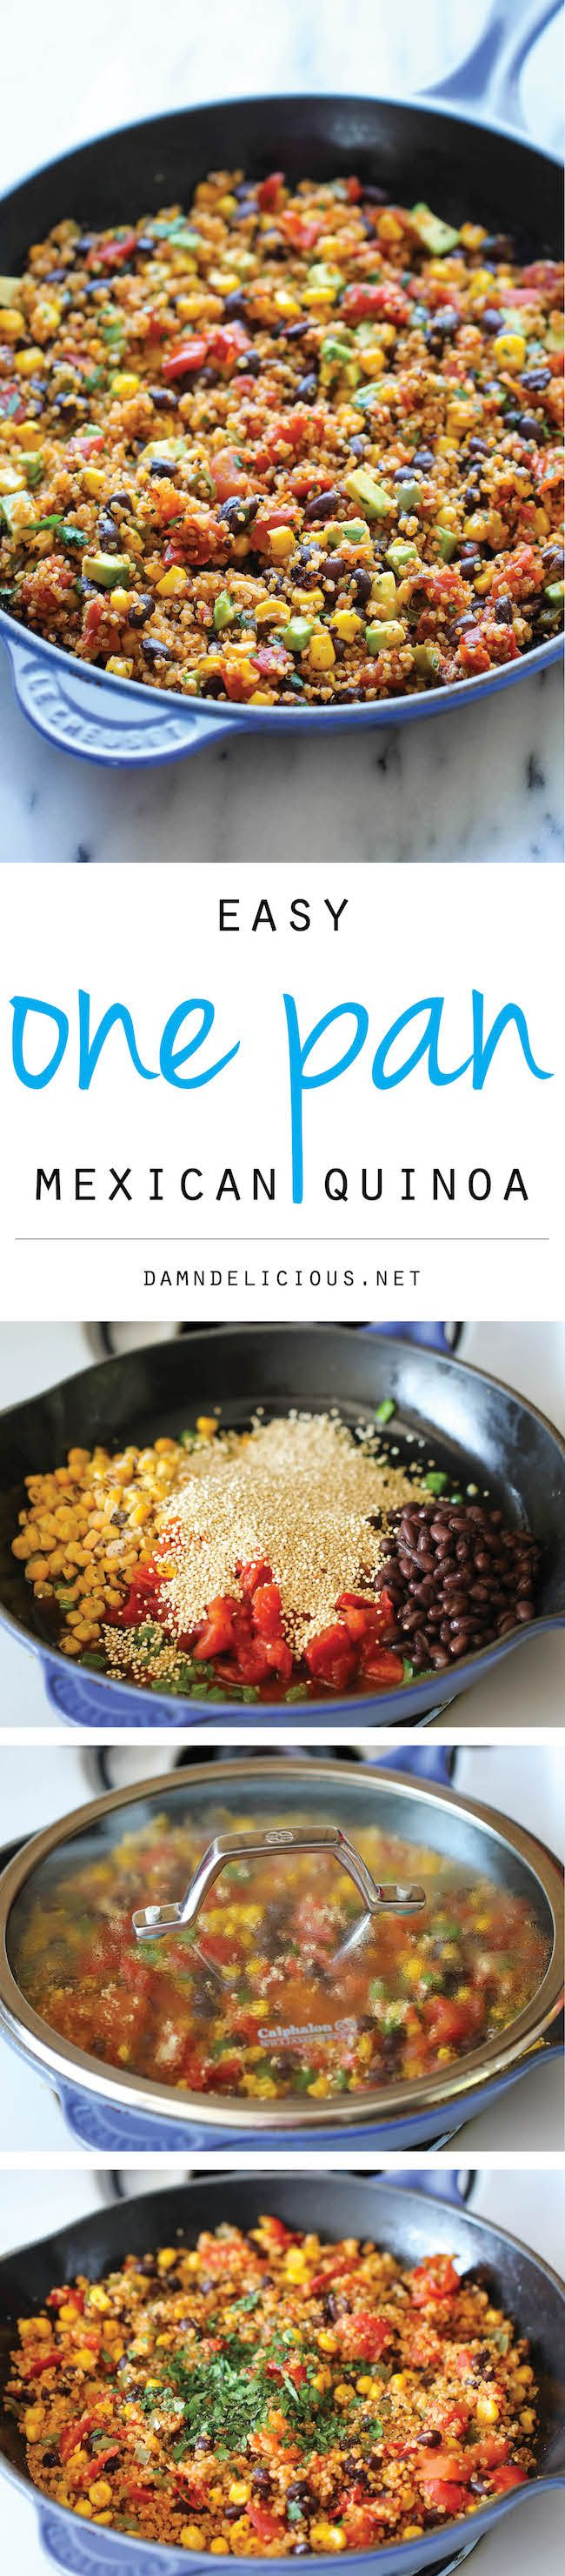 One Pan Mexican Quinoa - Wonderfully light, healthy and nutritious.